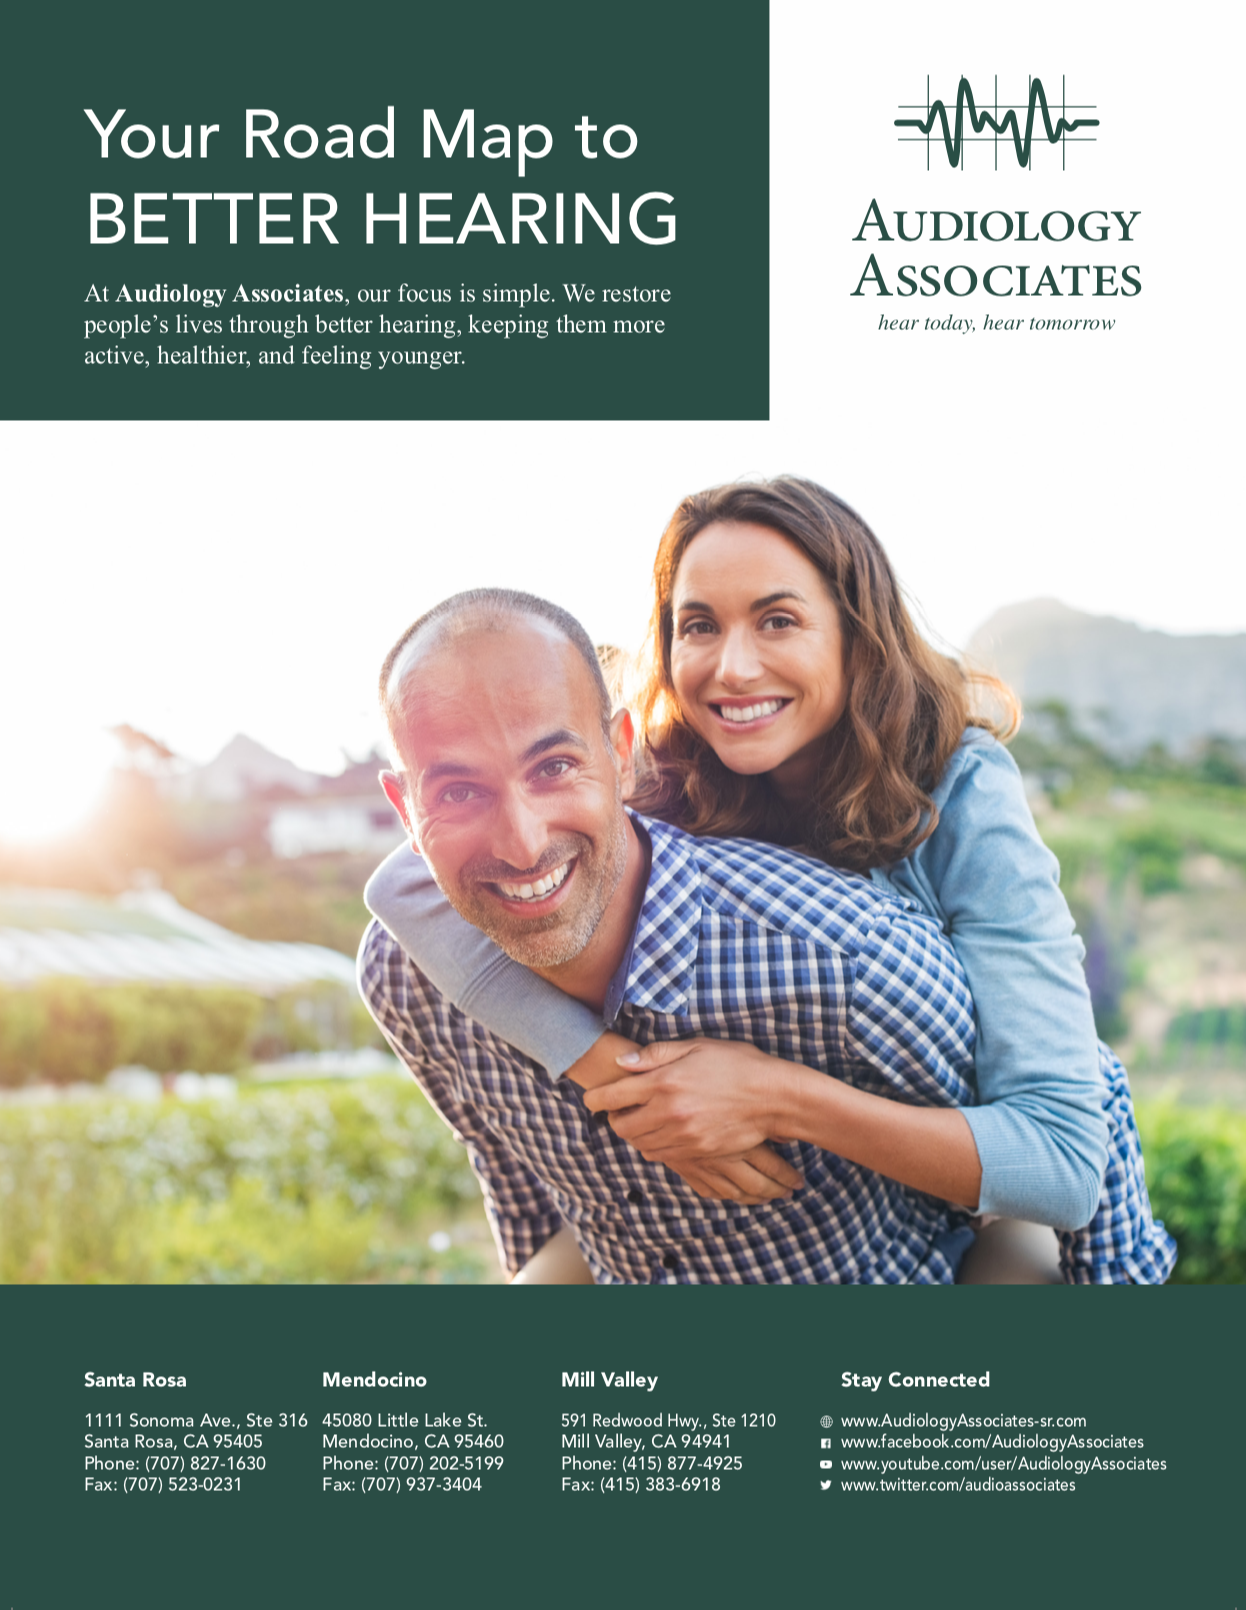 Your Roadmap To Better Hearing